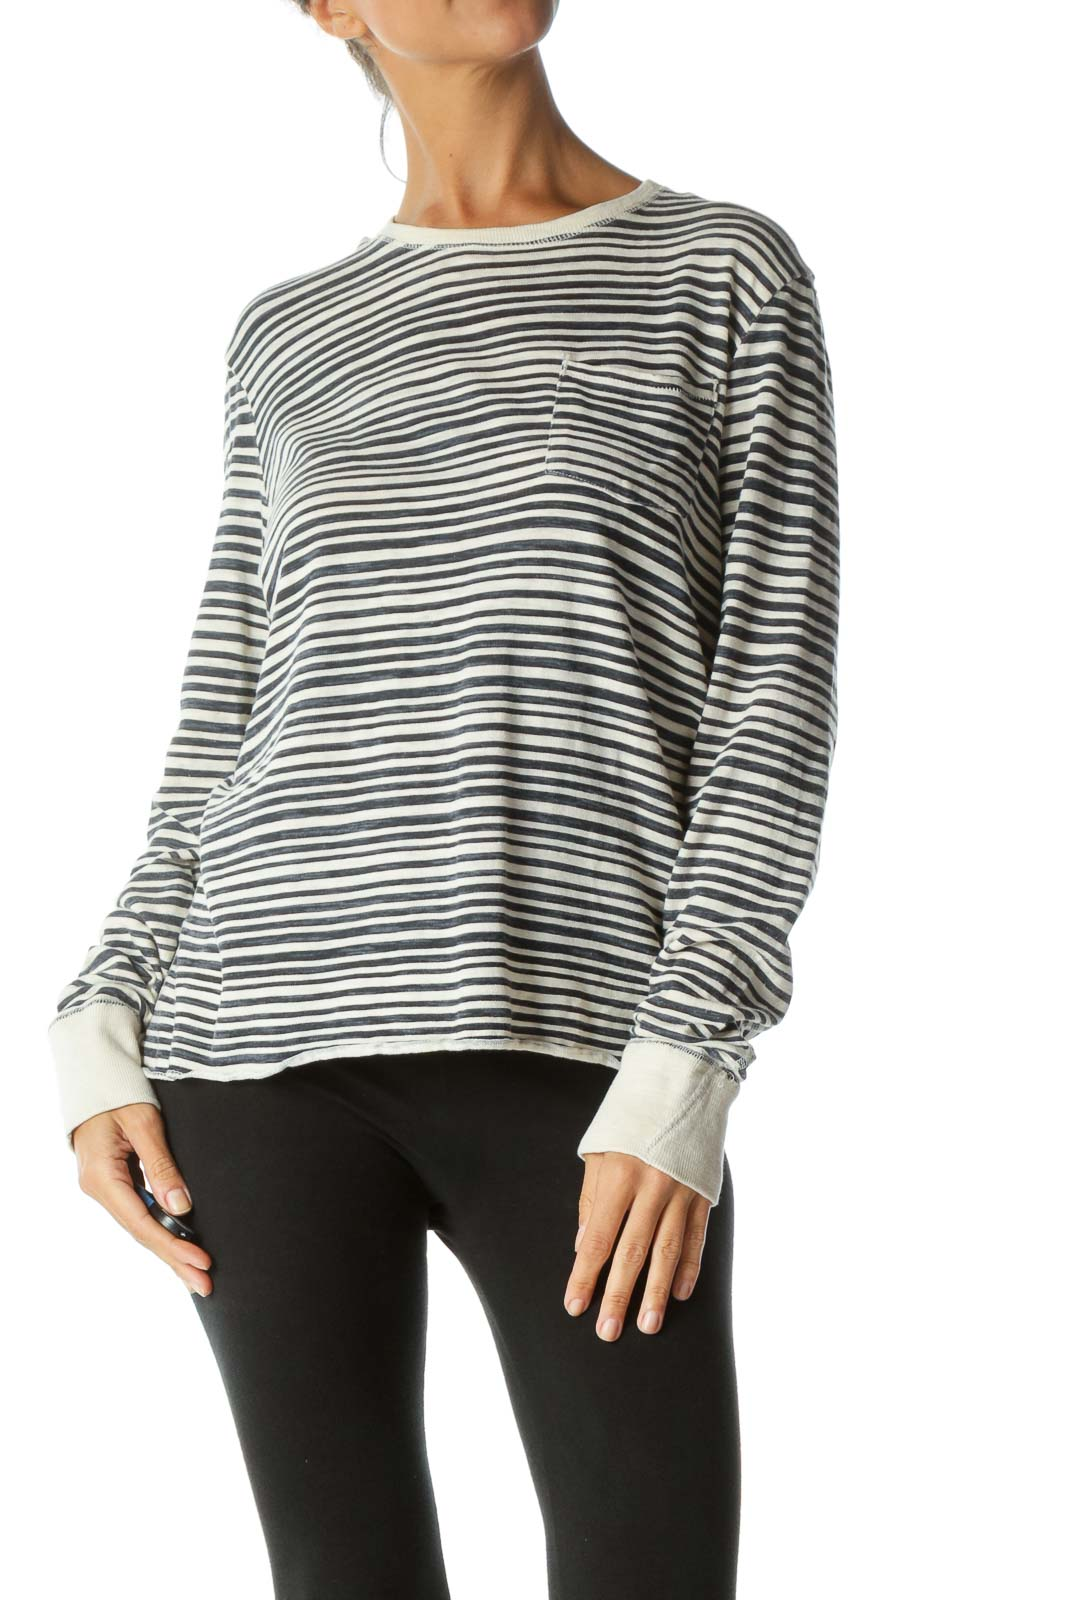 Black Beige Stripe Cotton T-shirt